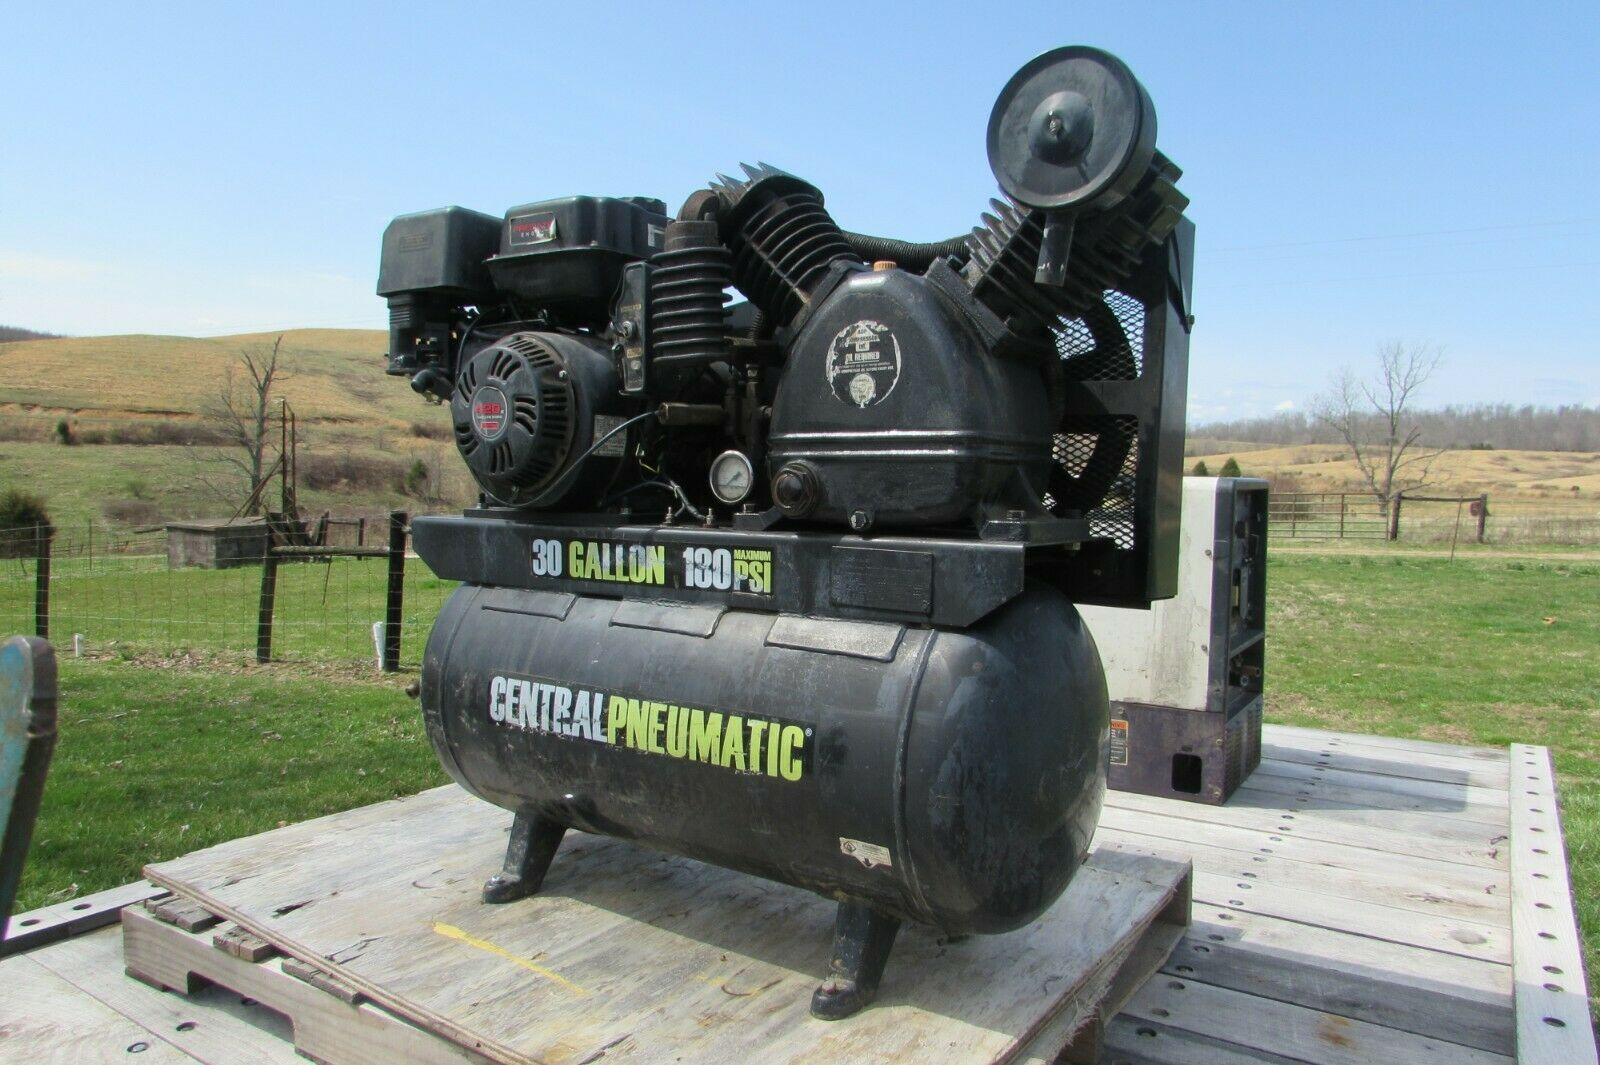 Used 30 Gallon 180 PSI Max Gas Central Pneumatic Air Compressor  #1014. Buy it now for 700.00